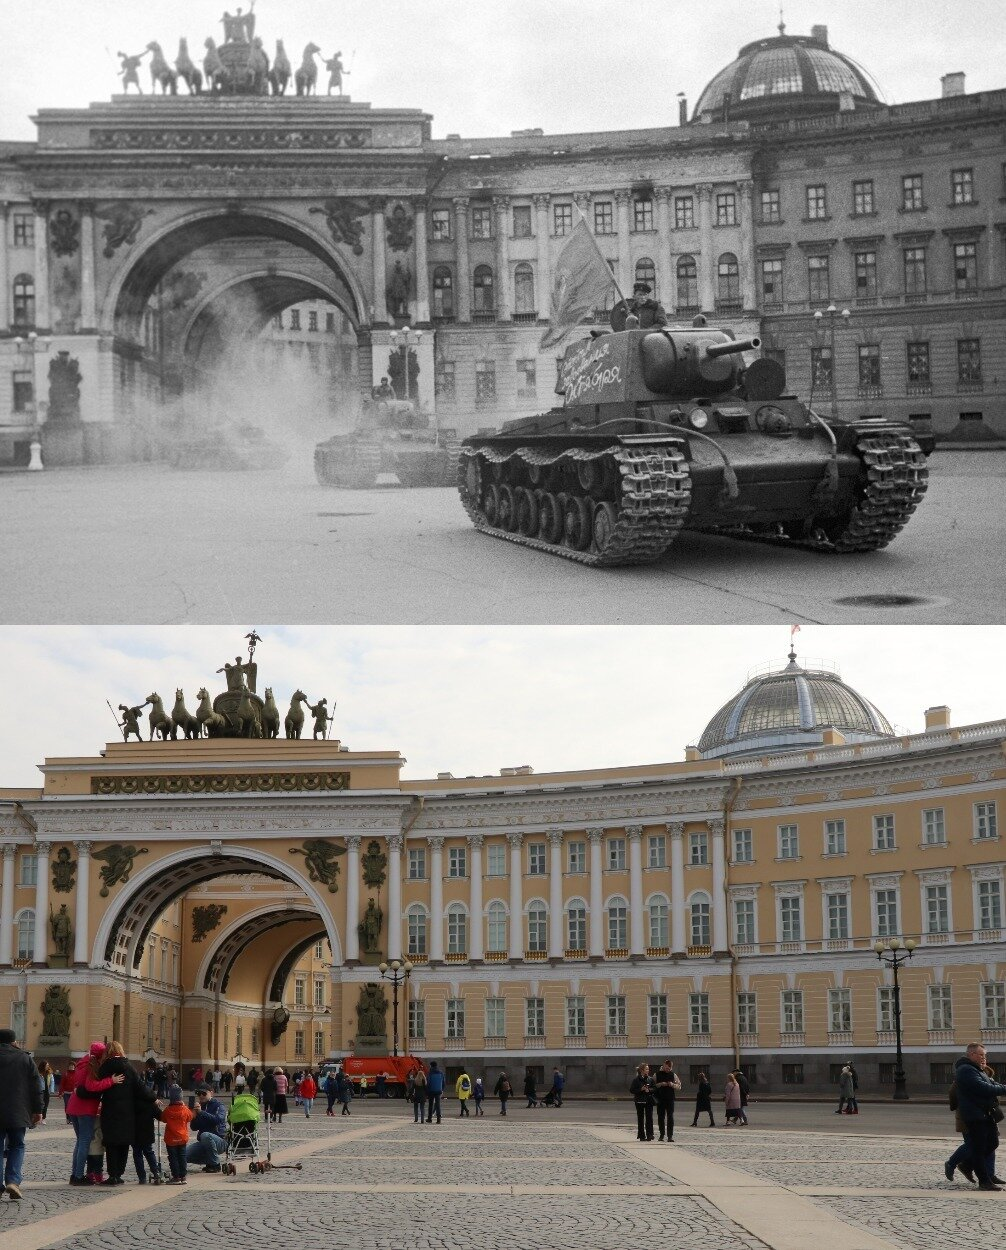 Blockaded Leningrad Vs. Saint-Petersburg of Today